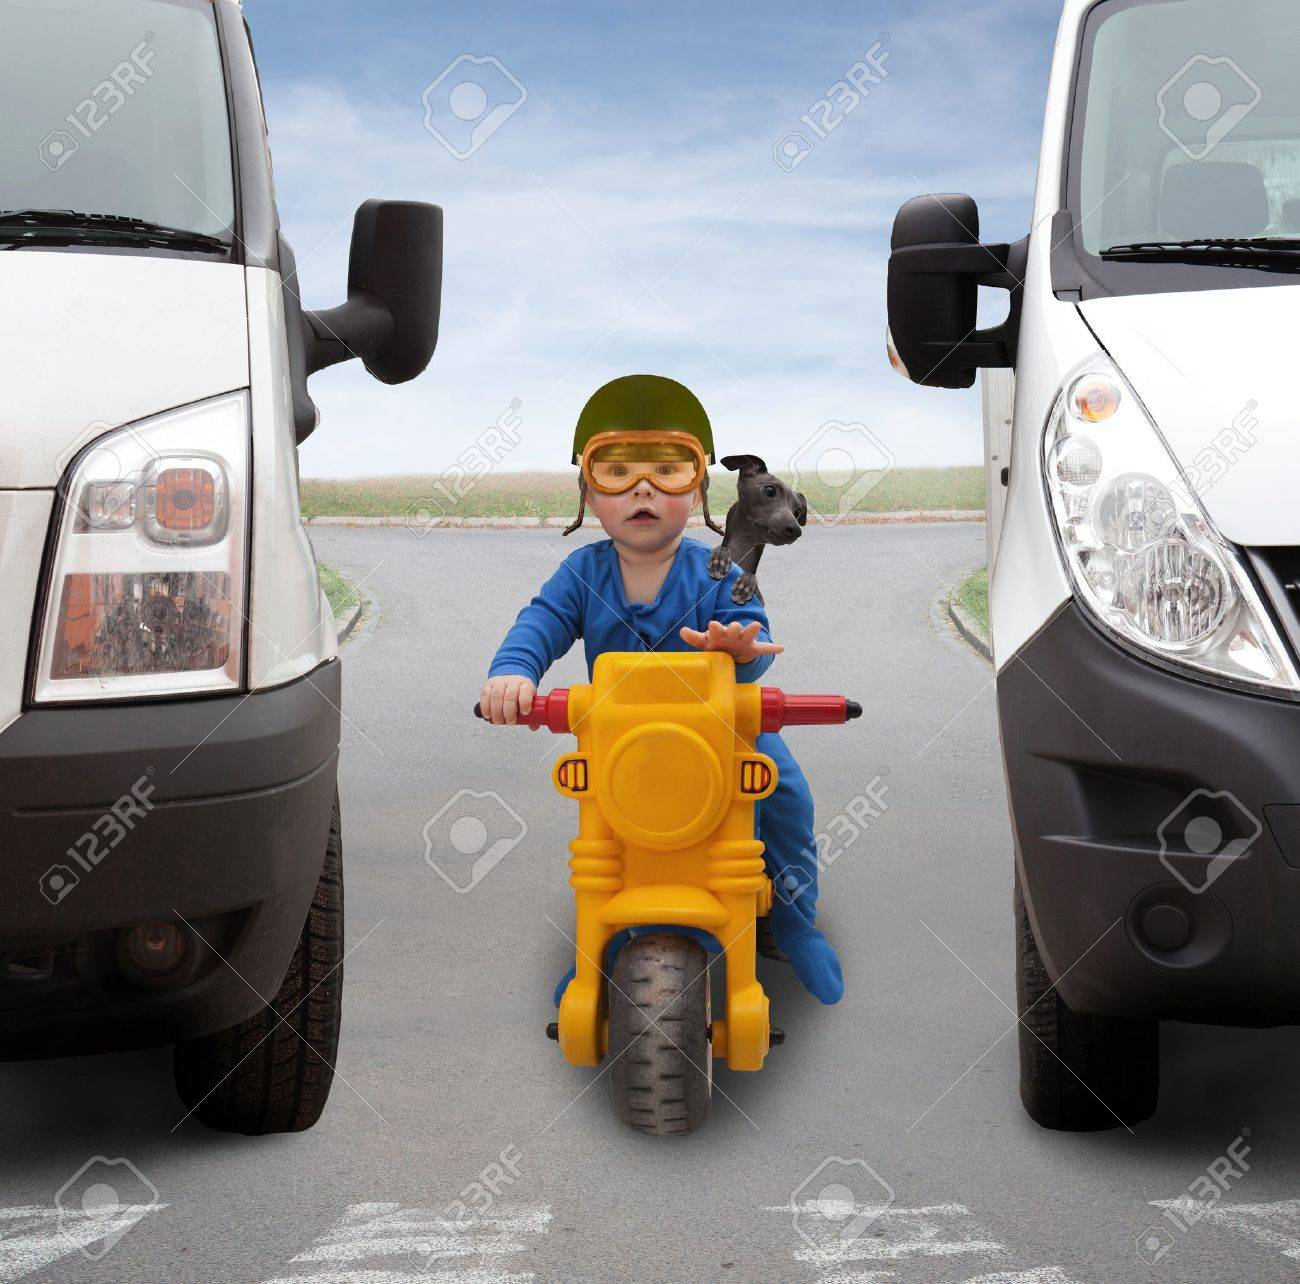 Small child on a motorcycle between two cars Stock Photo - 20112771